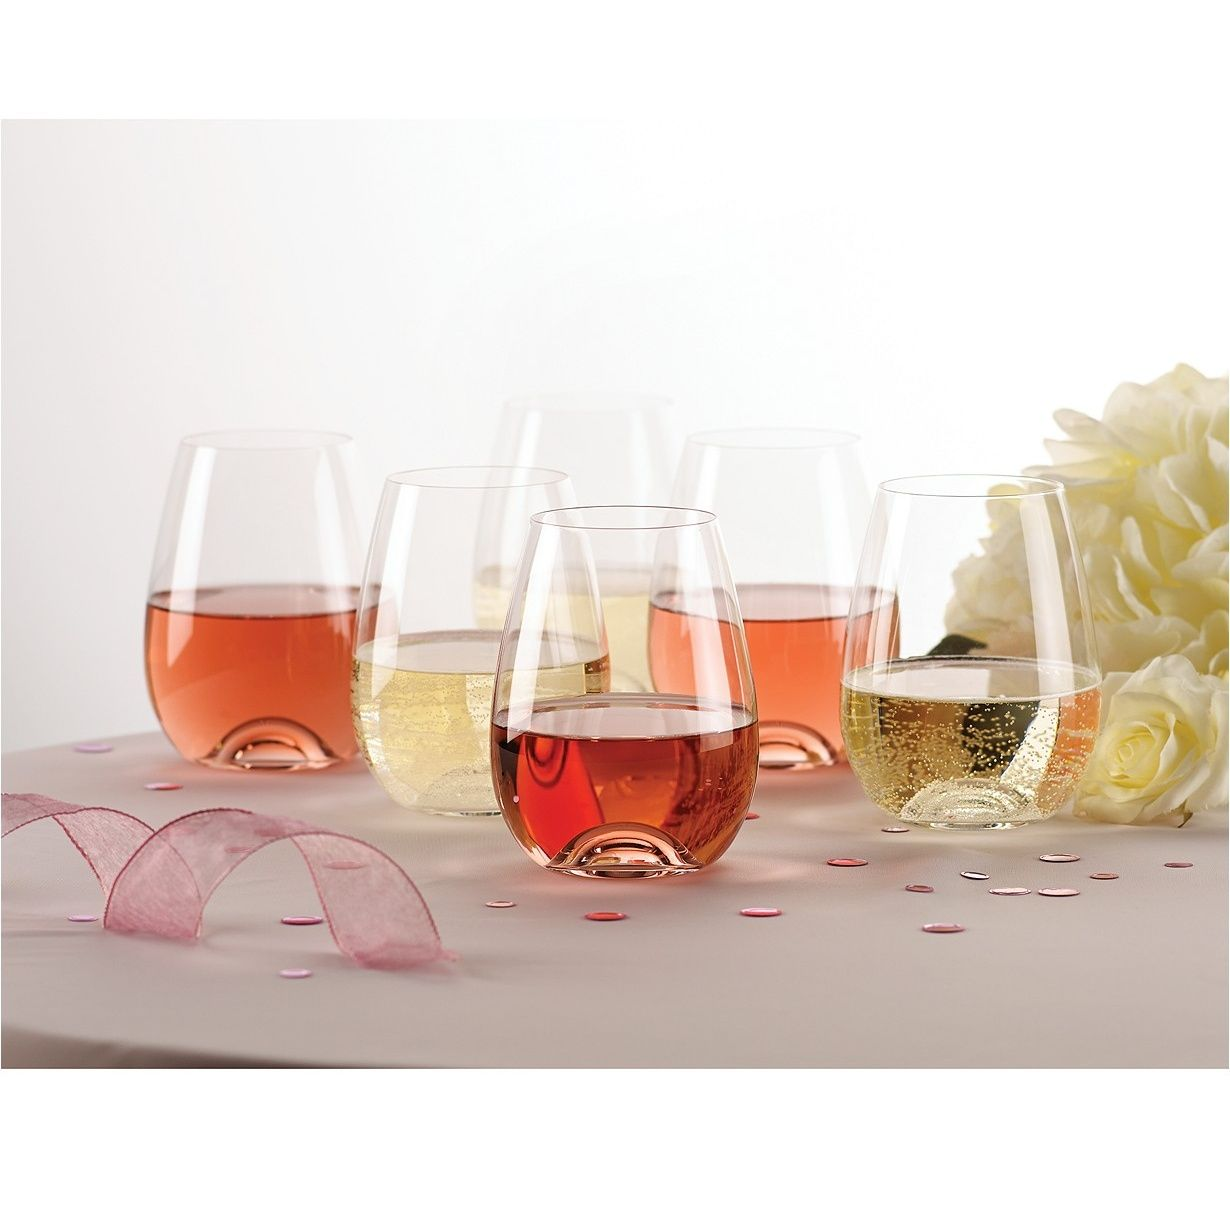 Tuscany Stemless Wine, set of 6